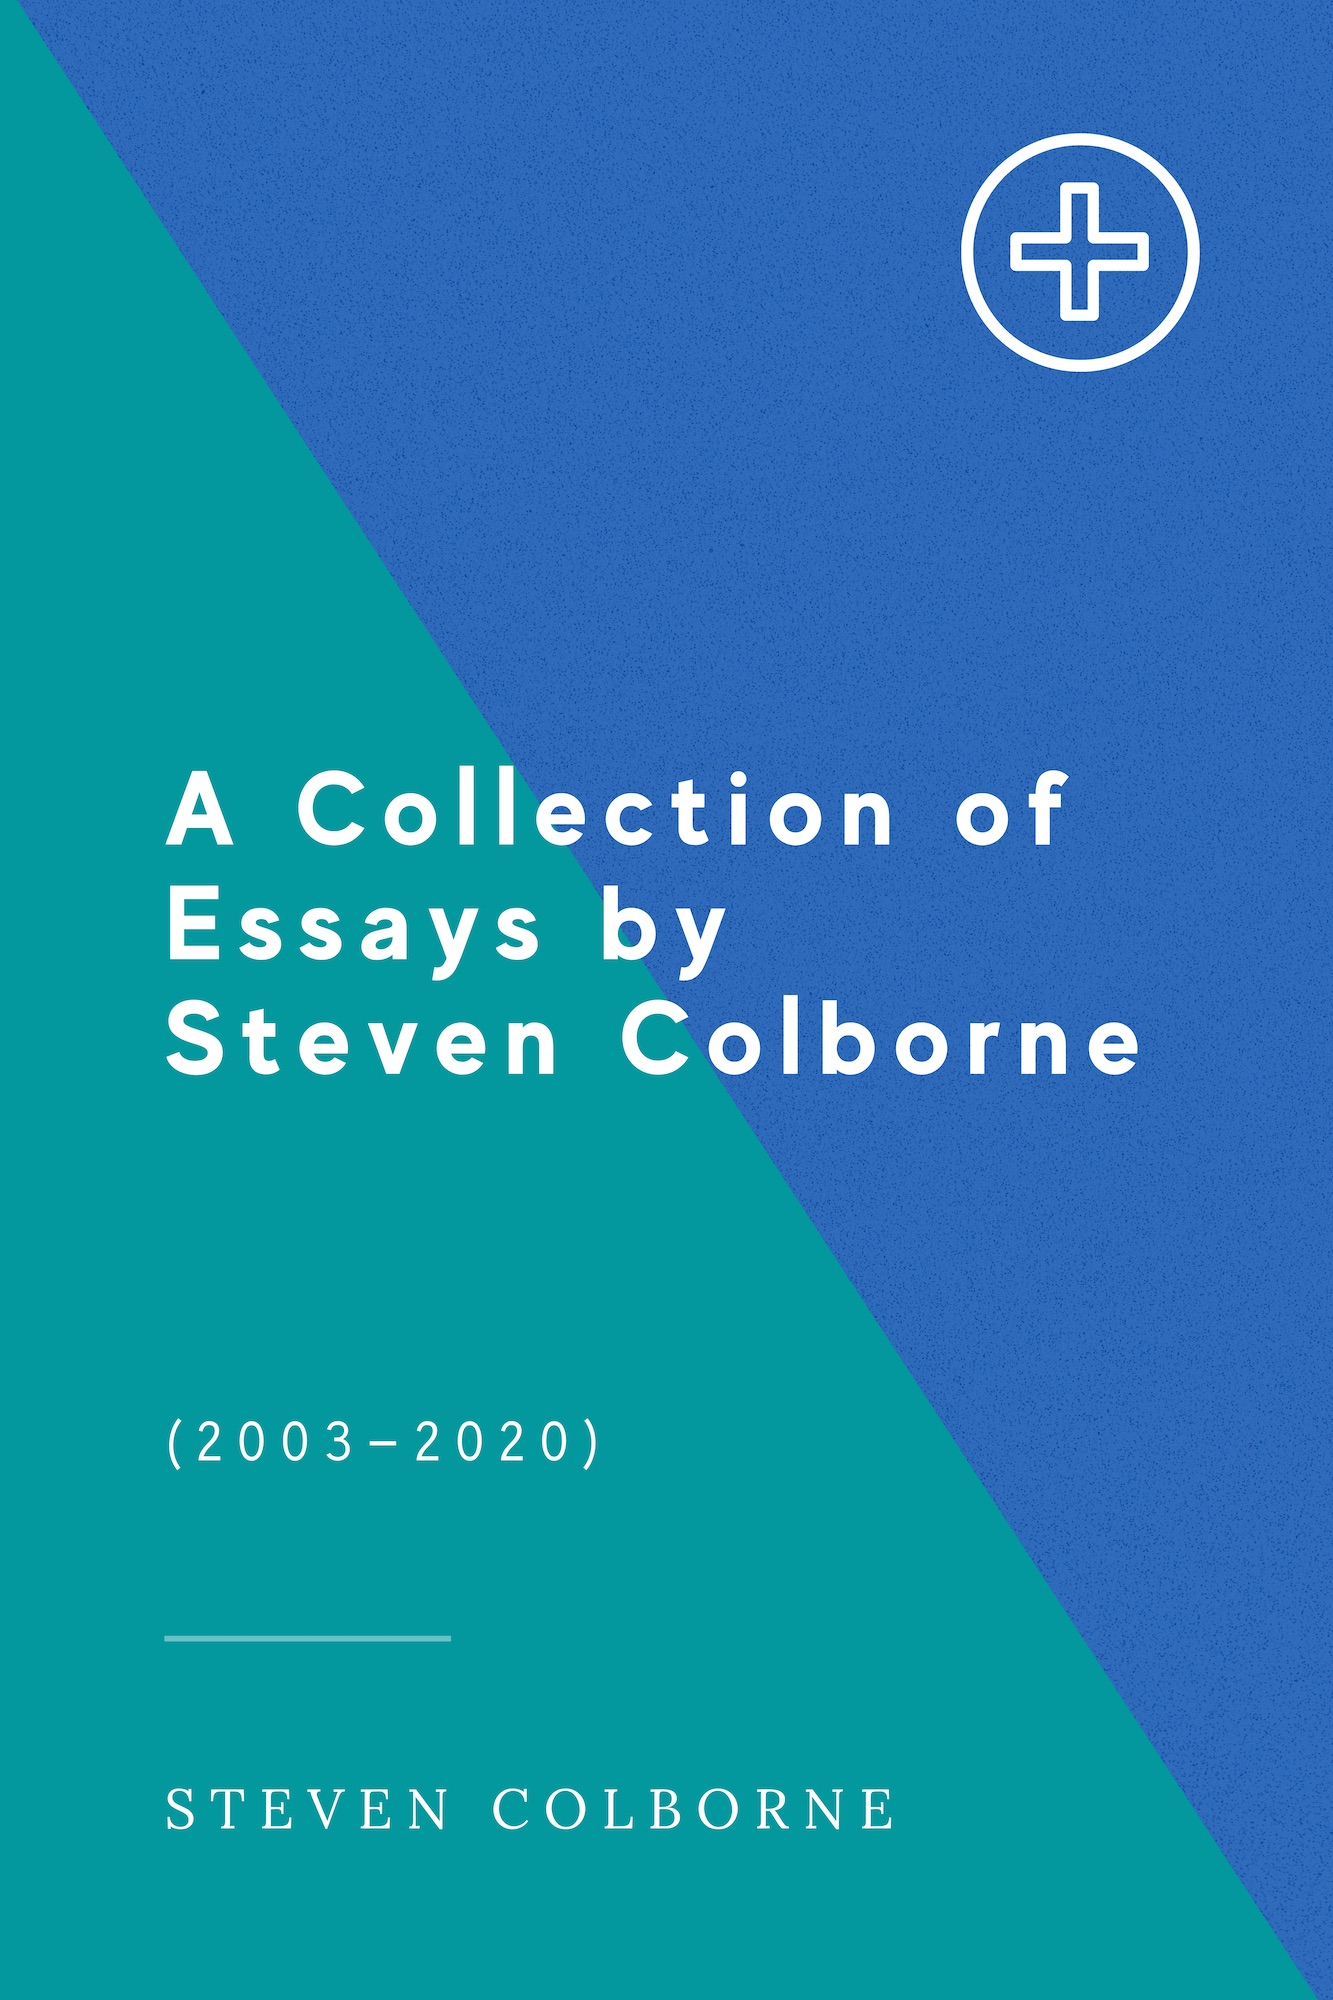 A Collection of Essays by Steven Colborne (front cover)